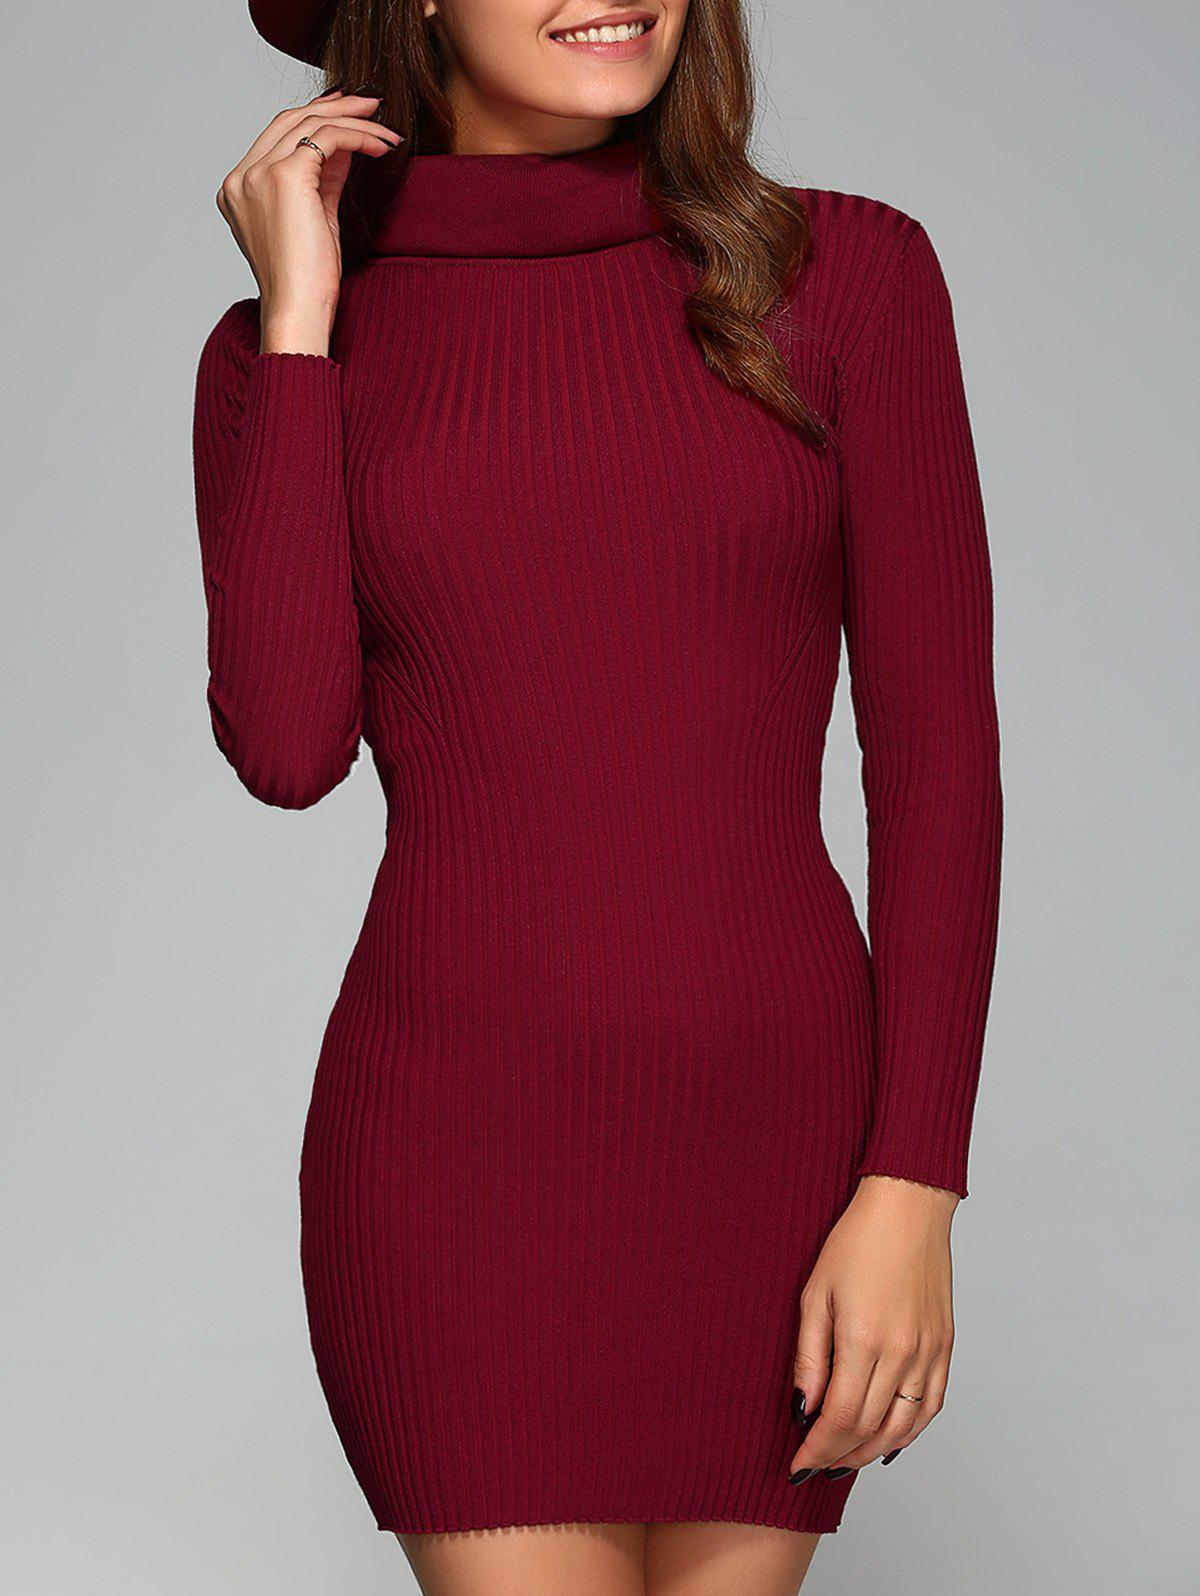 Turtle Neck Ribbed Skinny Stretchy Dress - WINE RED ONE SIZE